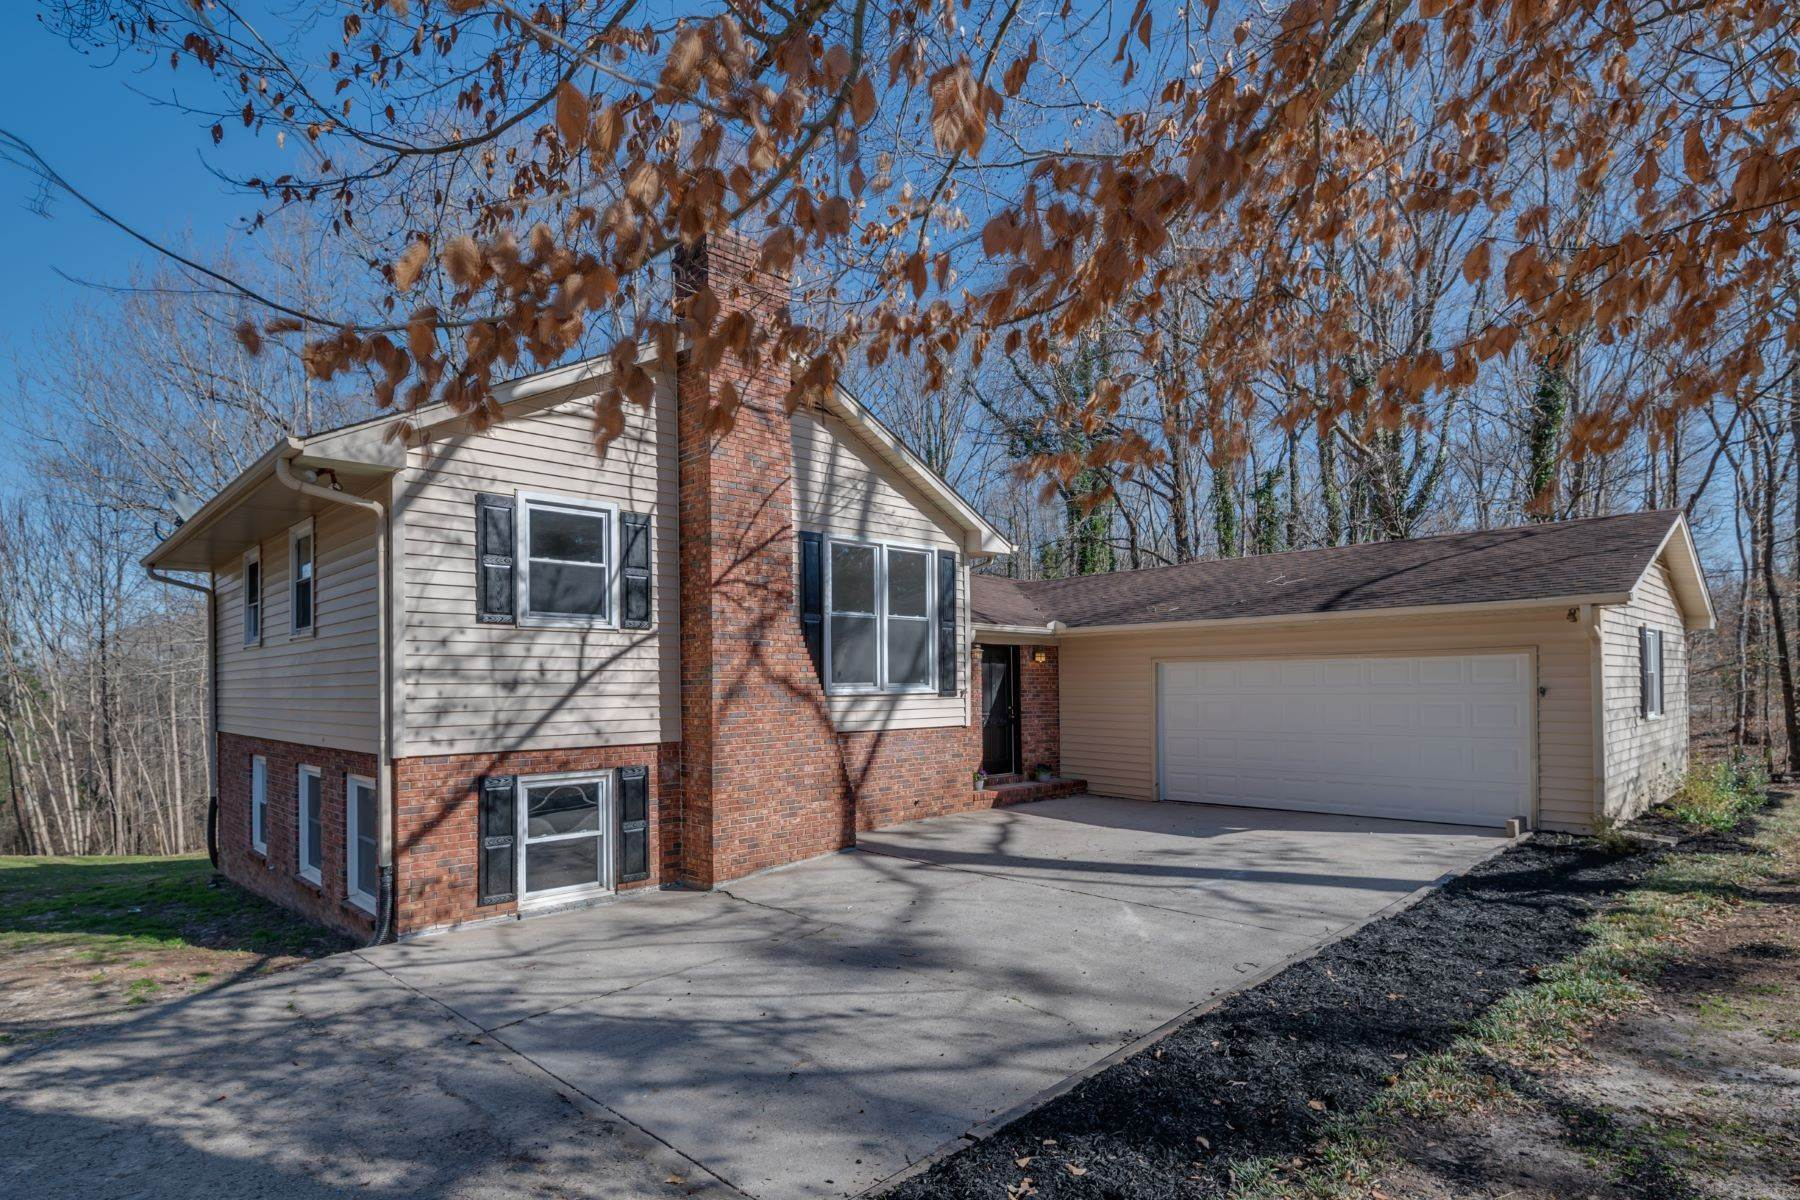 Single Family Homes for Sale at UNDER CONTRACT! 369 West Road, Roebuck, SC 29376 Roebuck, SC 29376